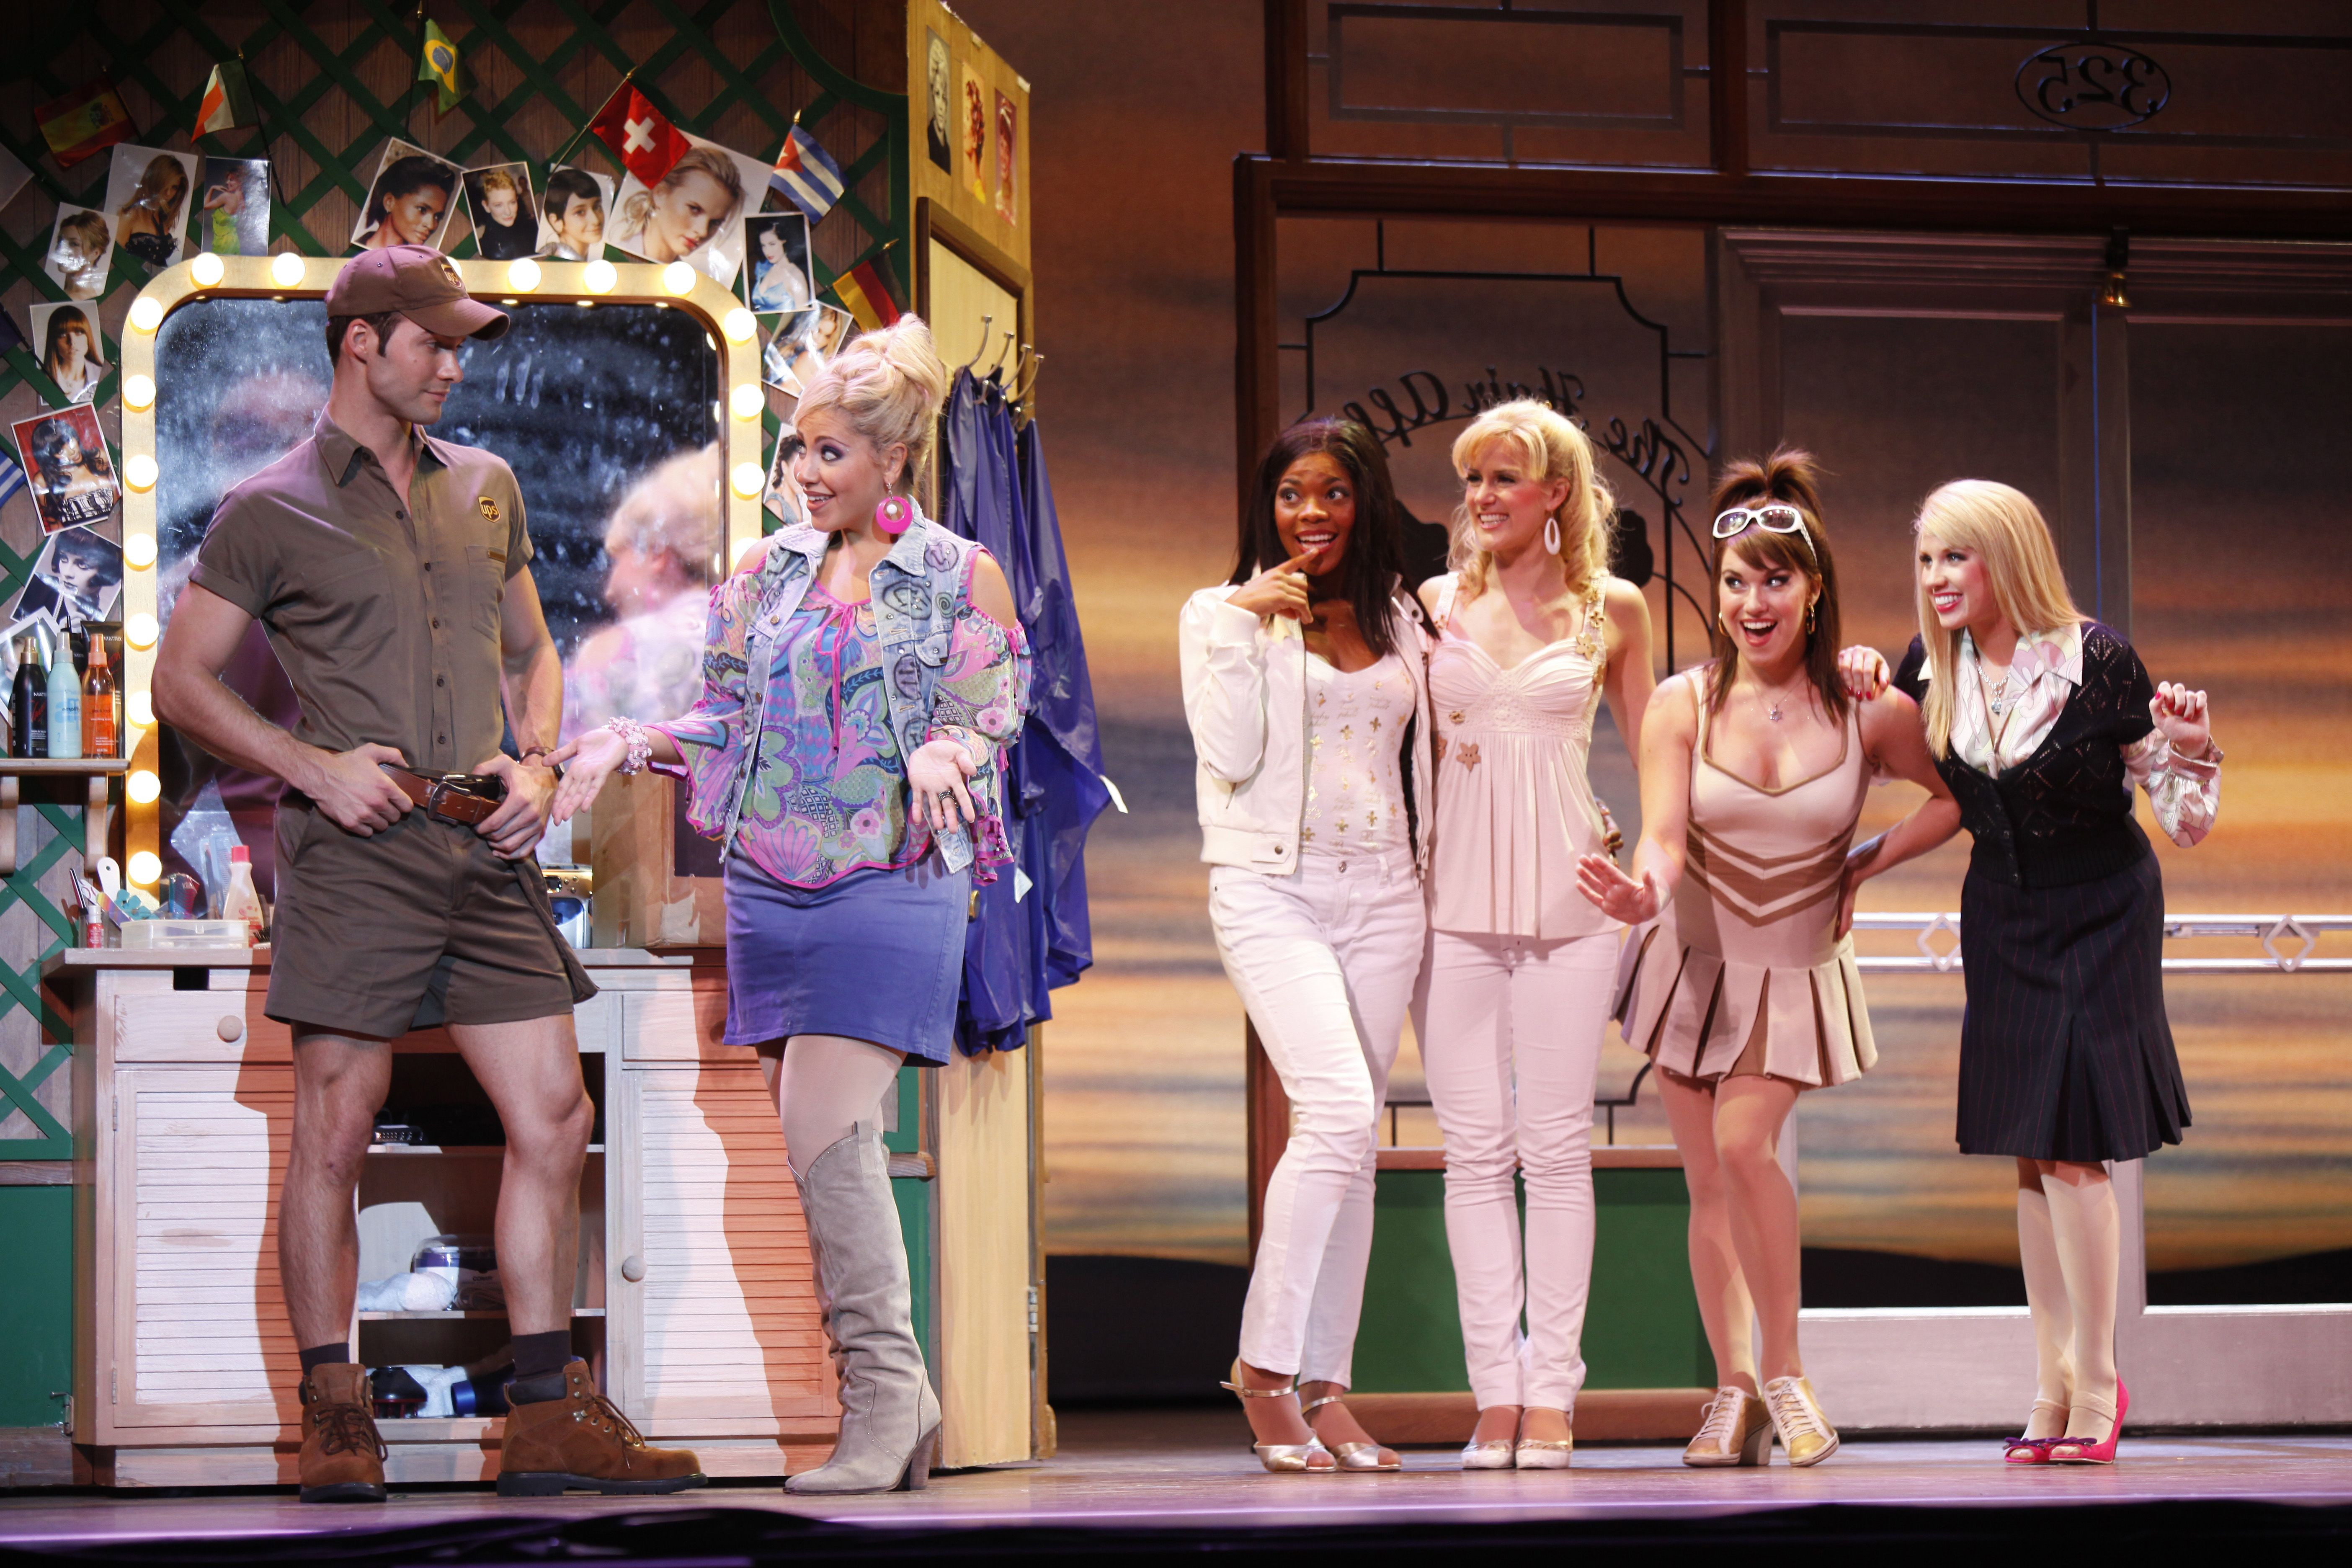 the-movie-legally-blonde-the-musical